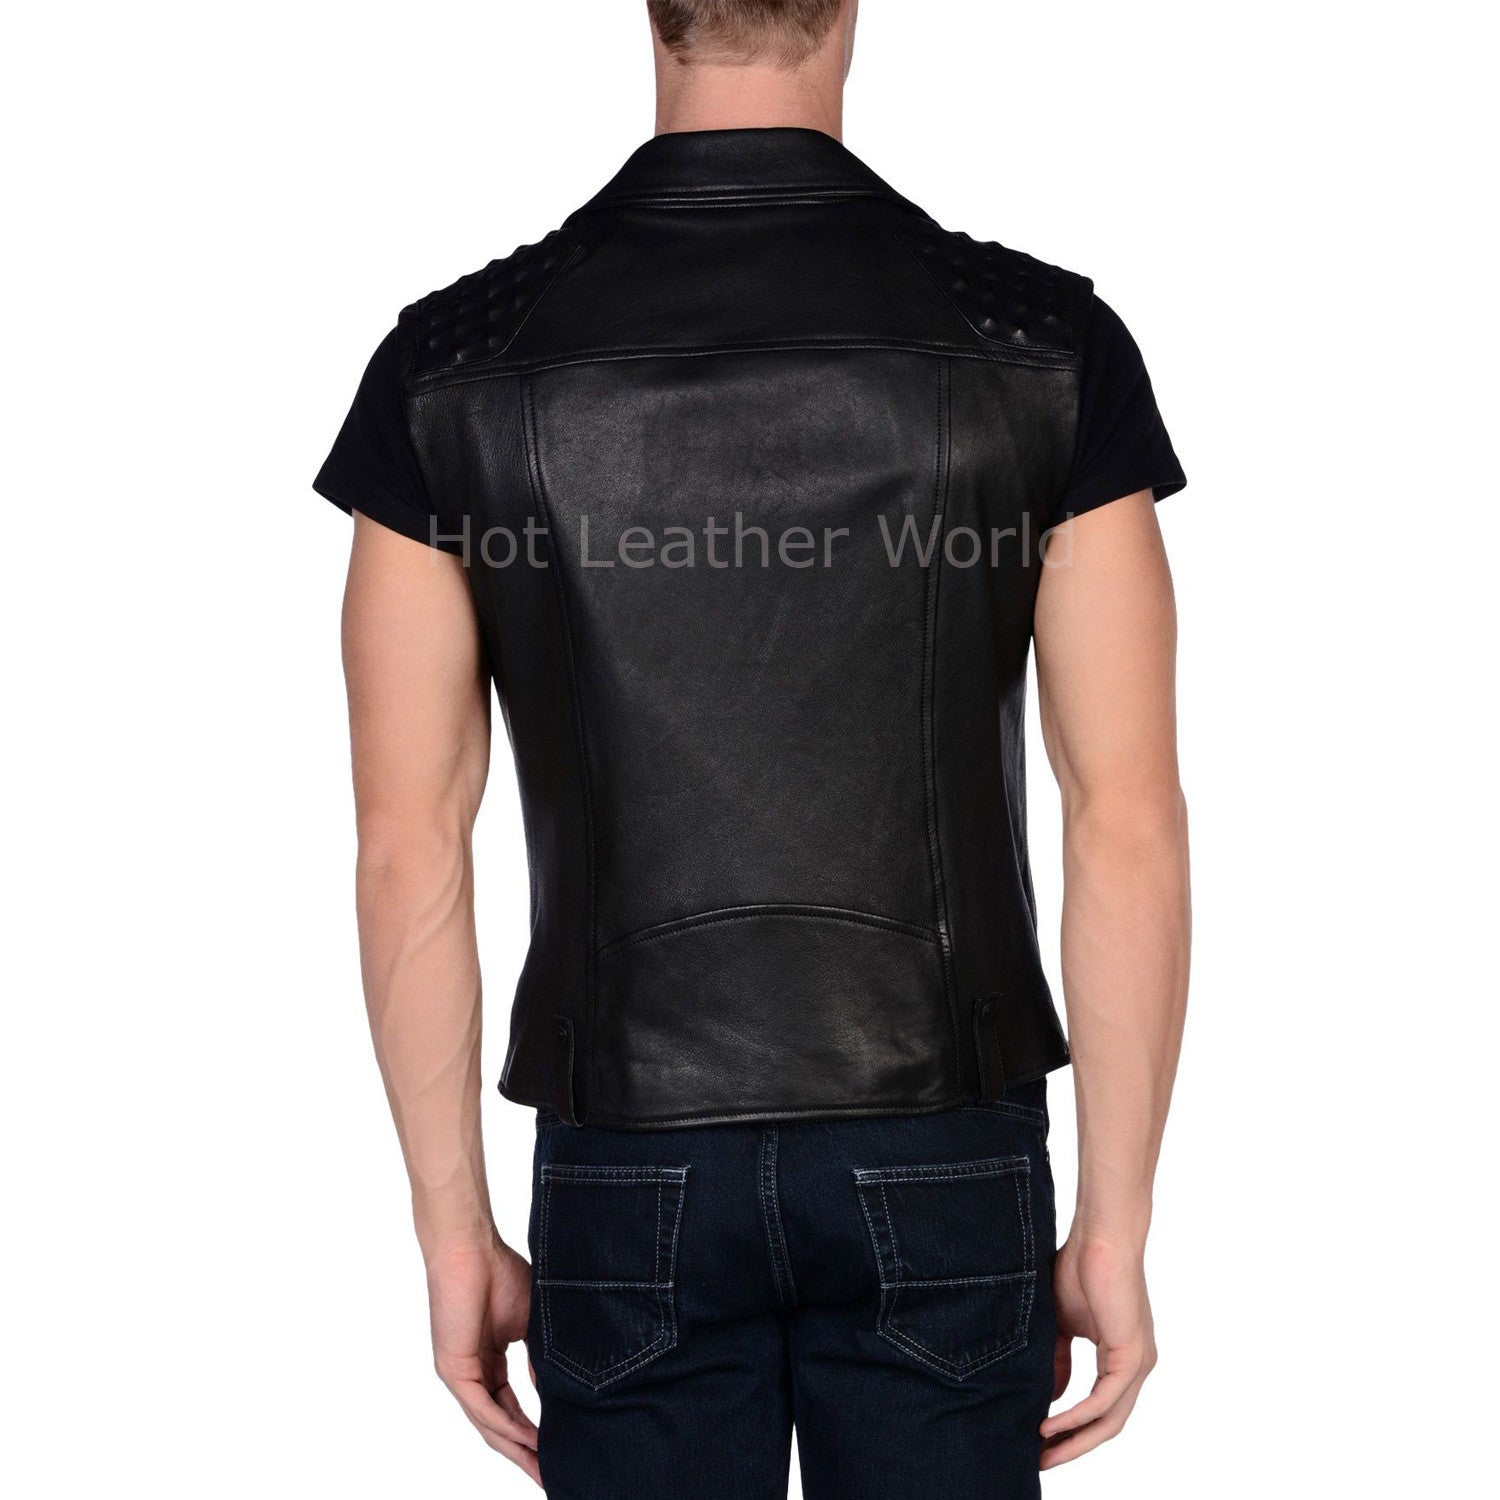 Sleeveless Style Men Leather Double Breasted Jacket -  HOTLEATHERWORLD